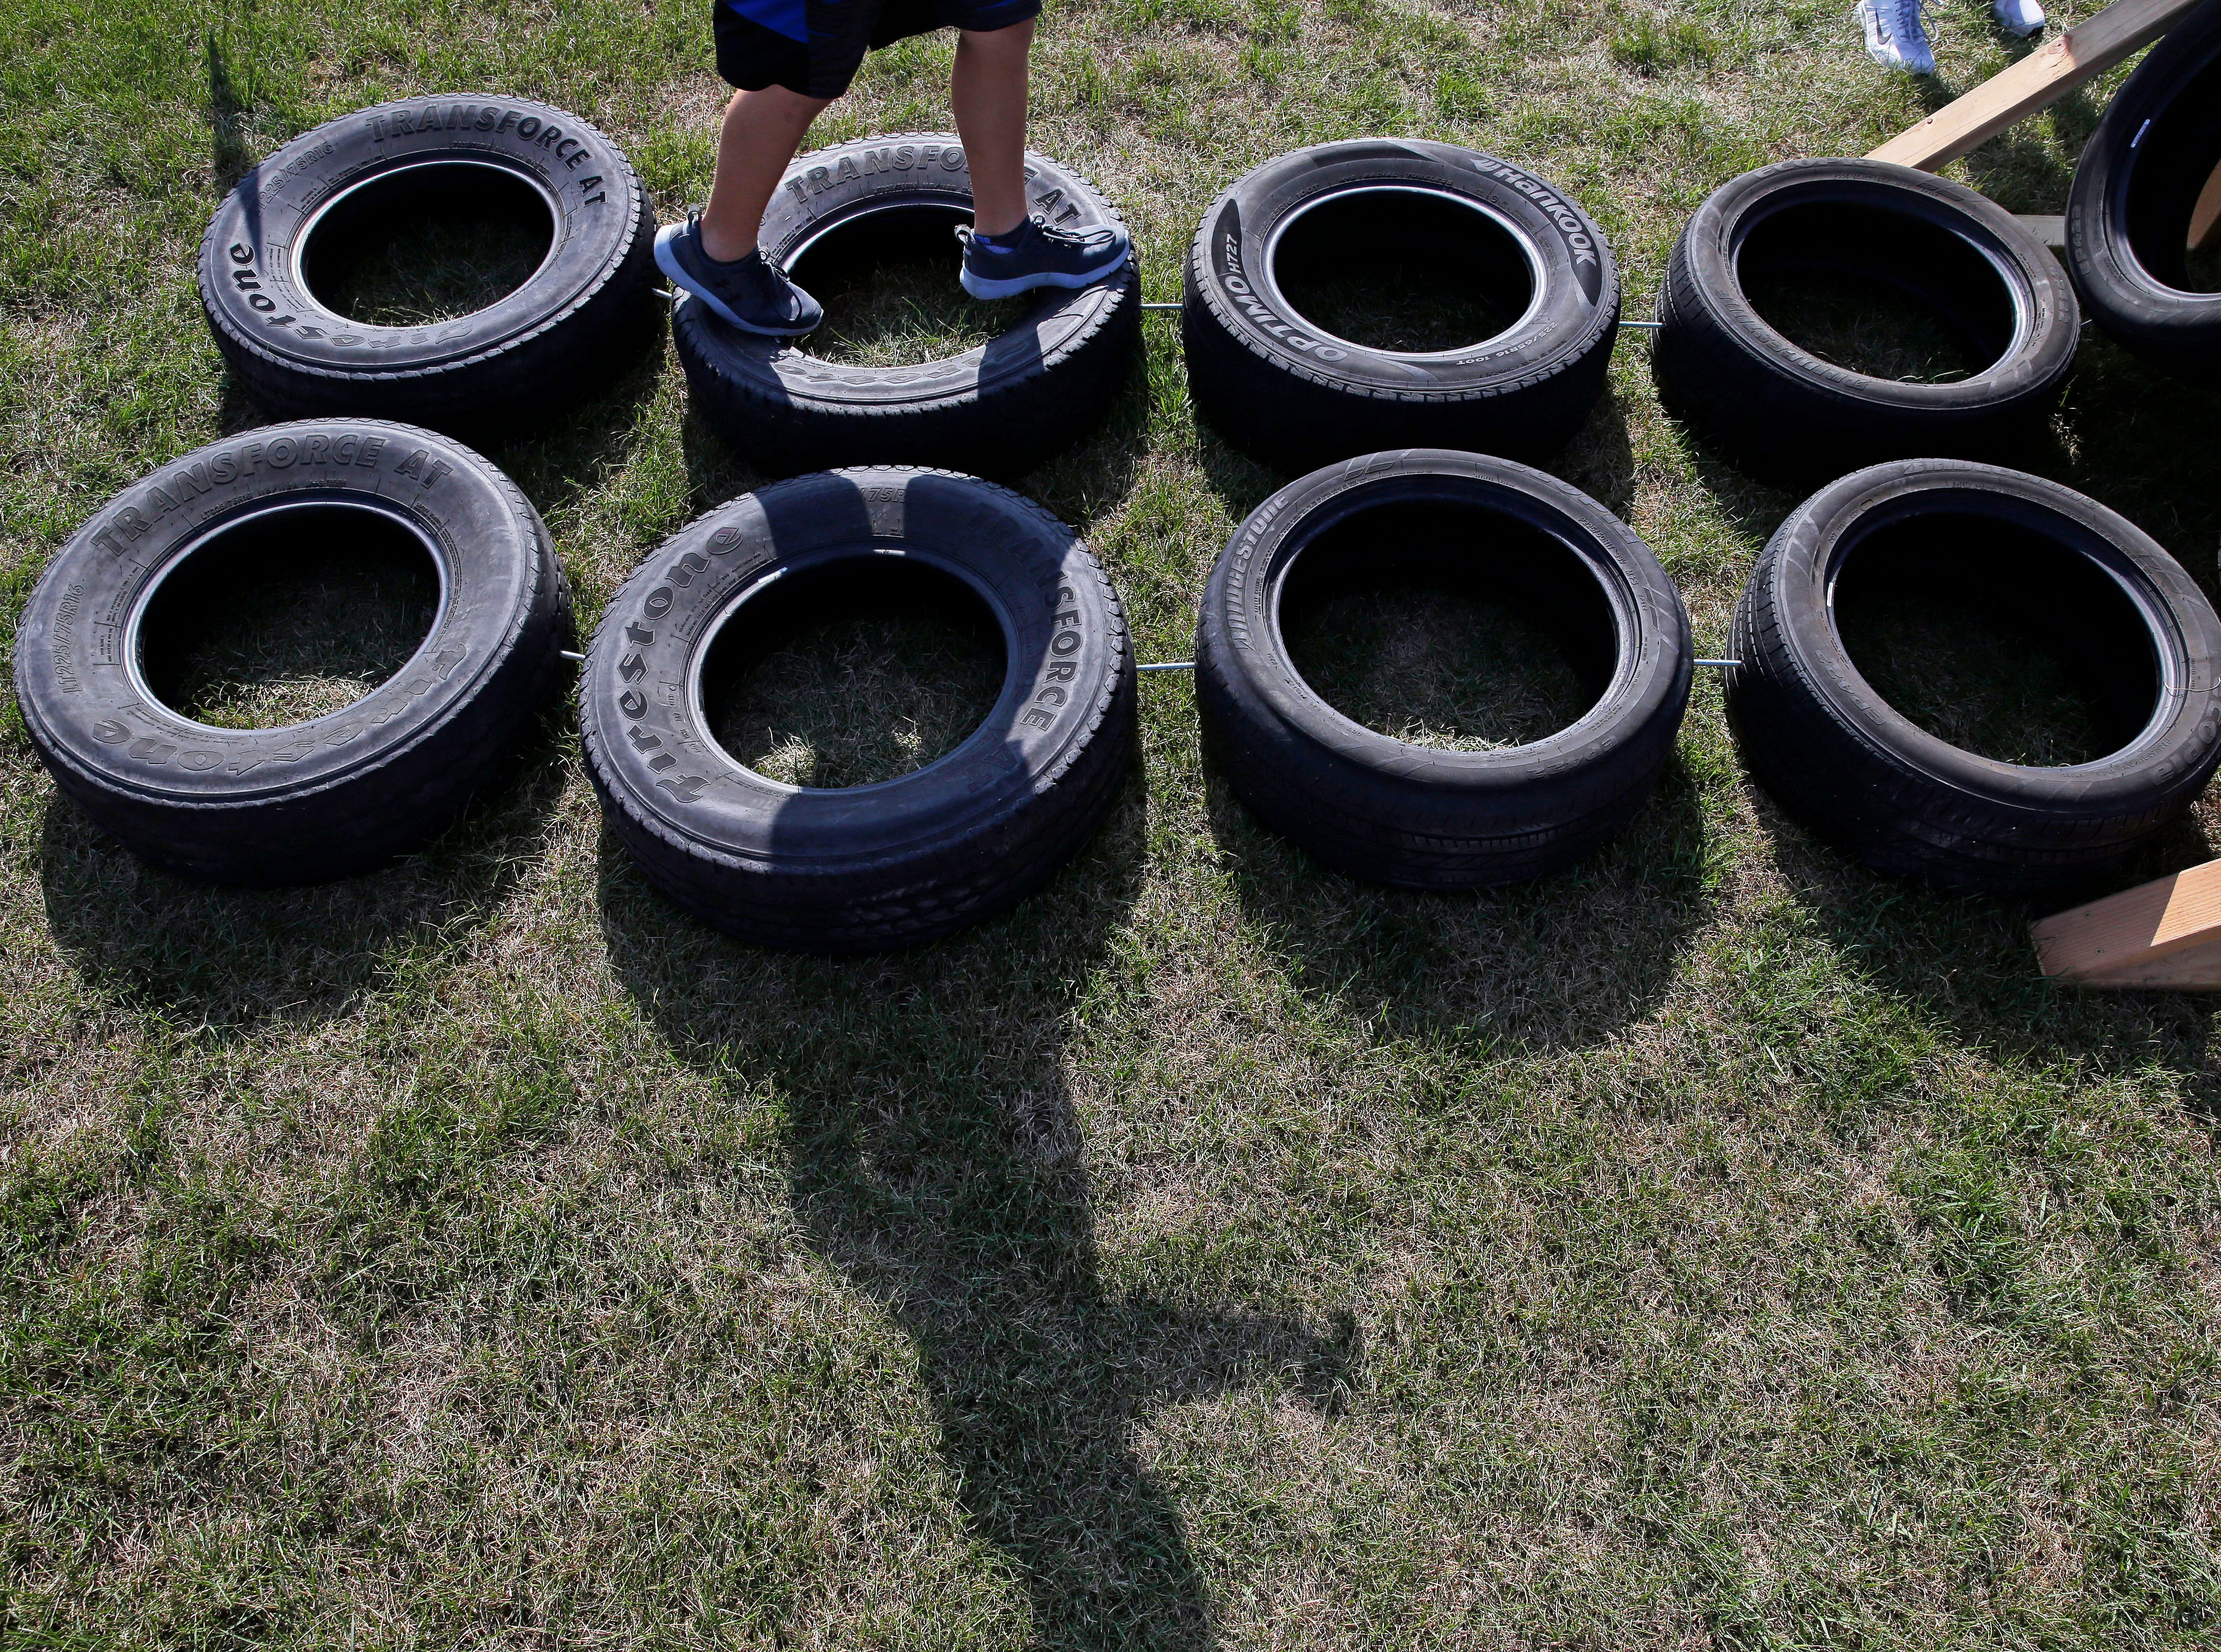 A runner goes over the tires as Cole's Cancer Crusade, an obstacle course for kids takes place Saturday, July 28, 2018, at Appleton East High School in Appleton, Wis. The event raised funds for the Snowdrop Foundation Wisconsin Chapter.